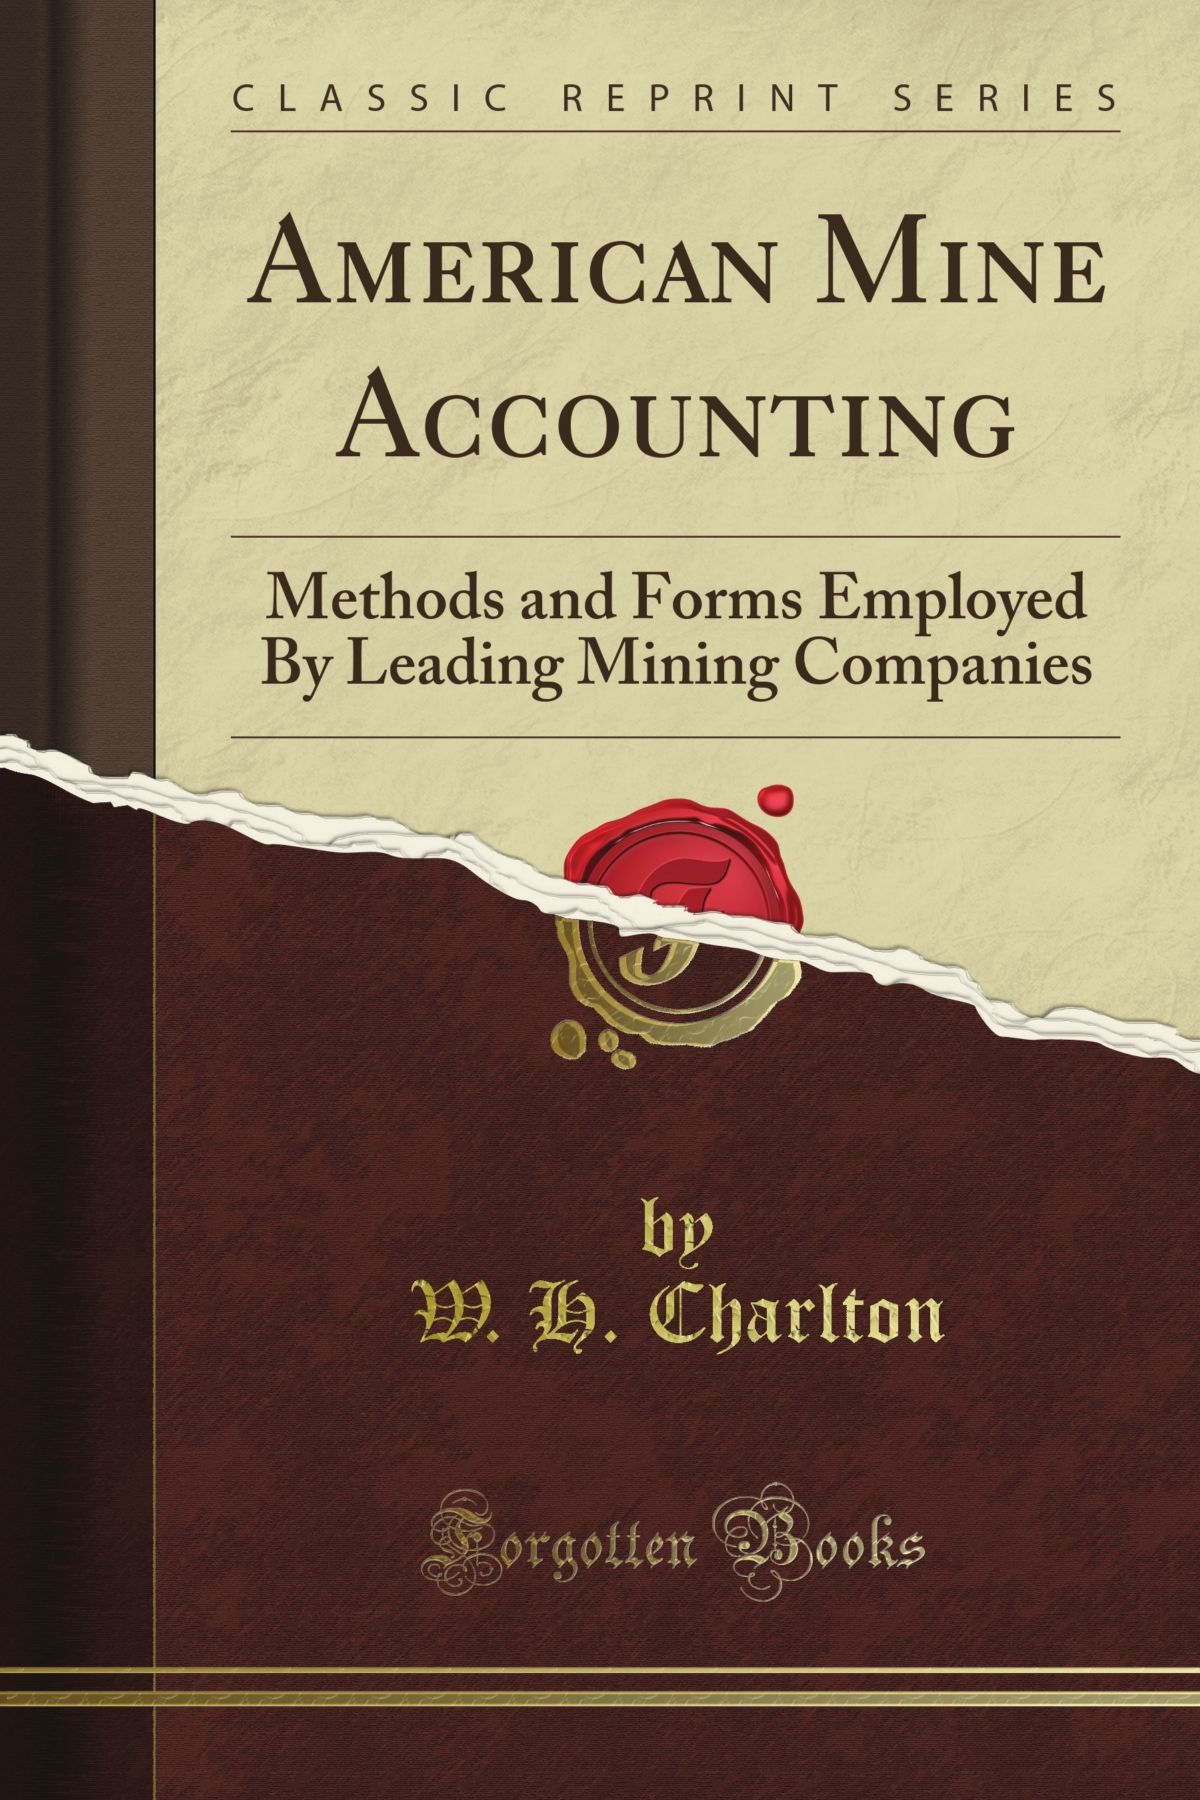 Download American Mine Accounting: Methods and Forms Employed By Leading Mining Companies (Classic Reprint) PDF ePub fb2 ebook